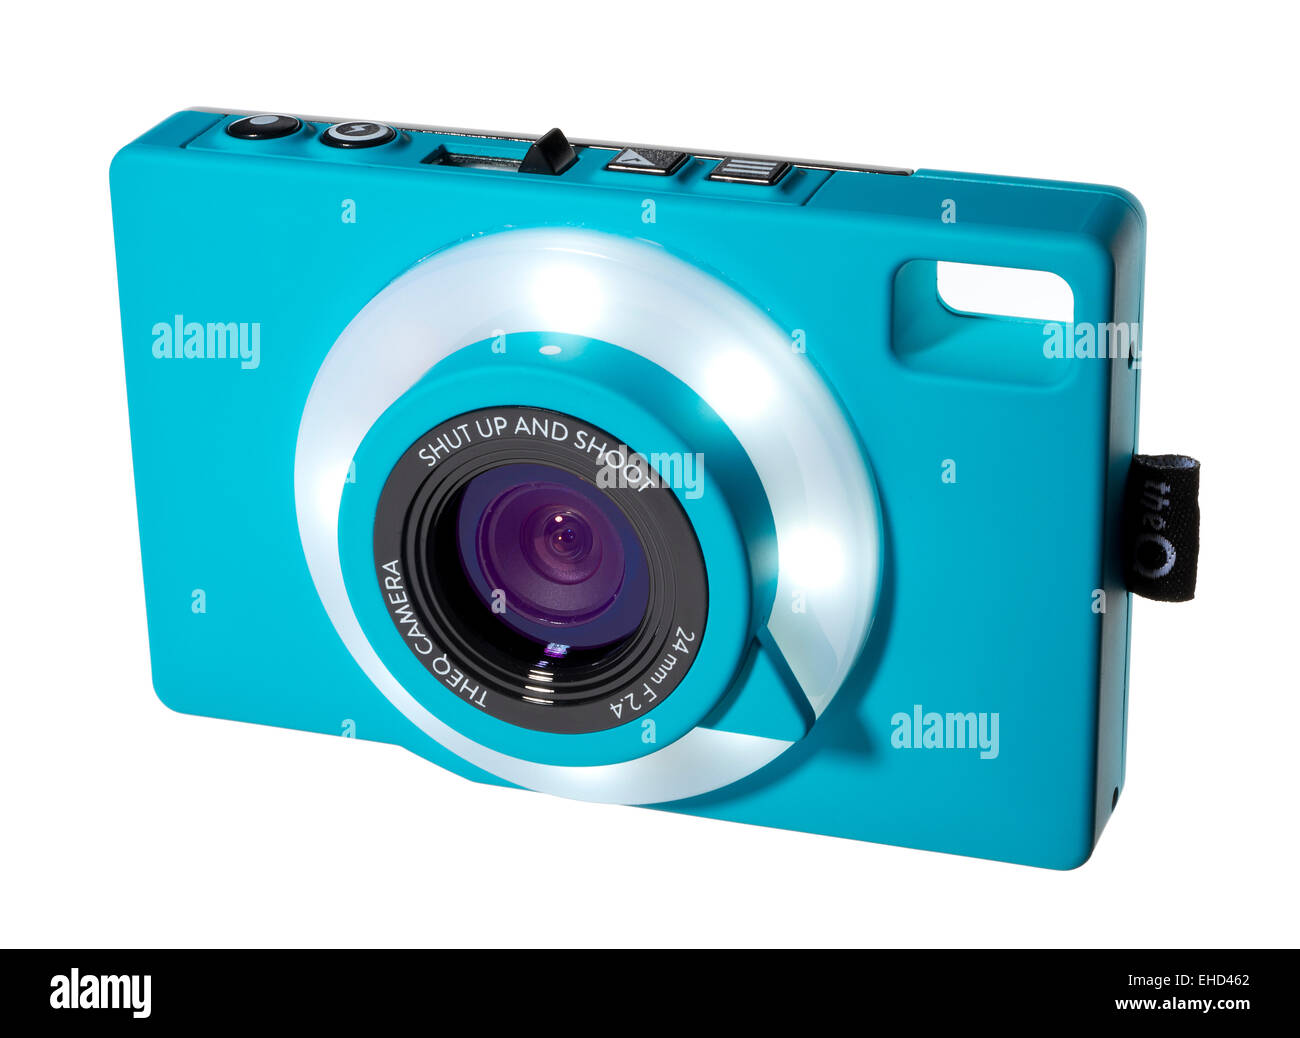 The Q camera in a turquoise blue colour